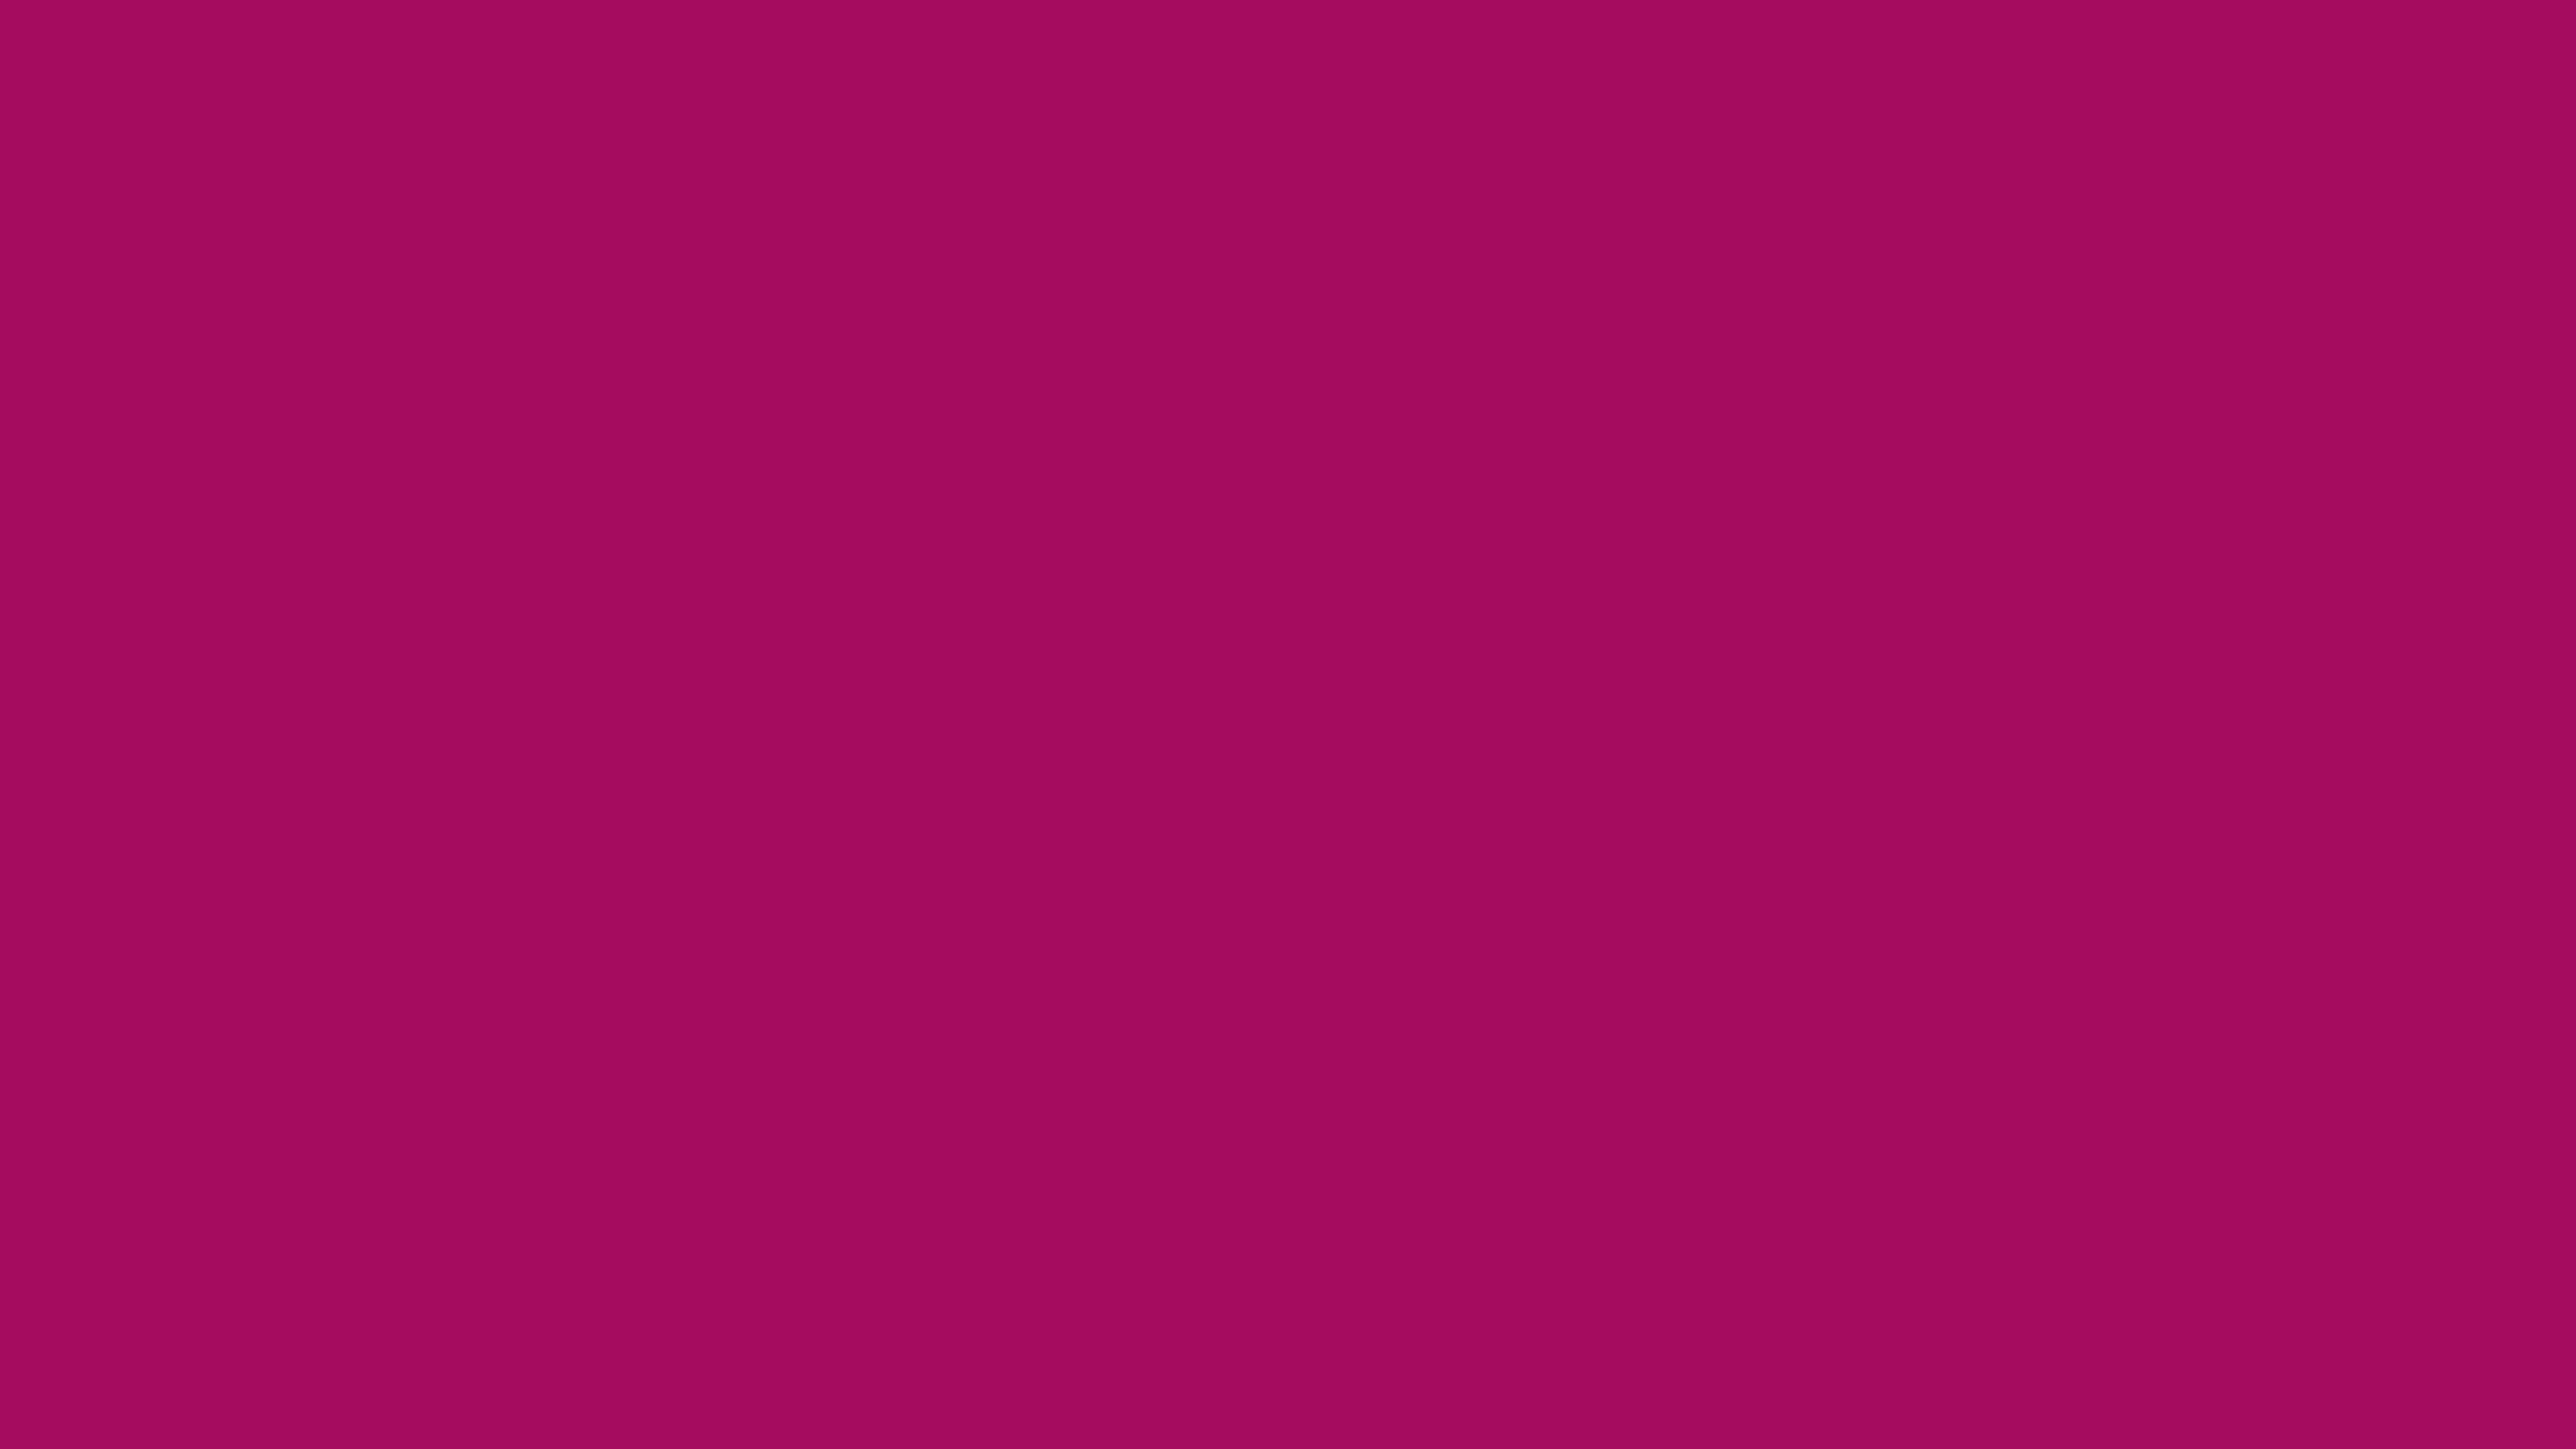 4096x2304 Jazzberry Jam Solid Color Background